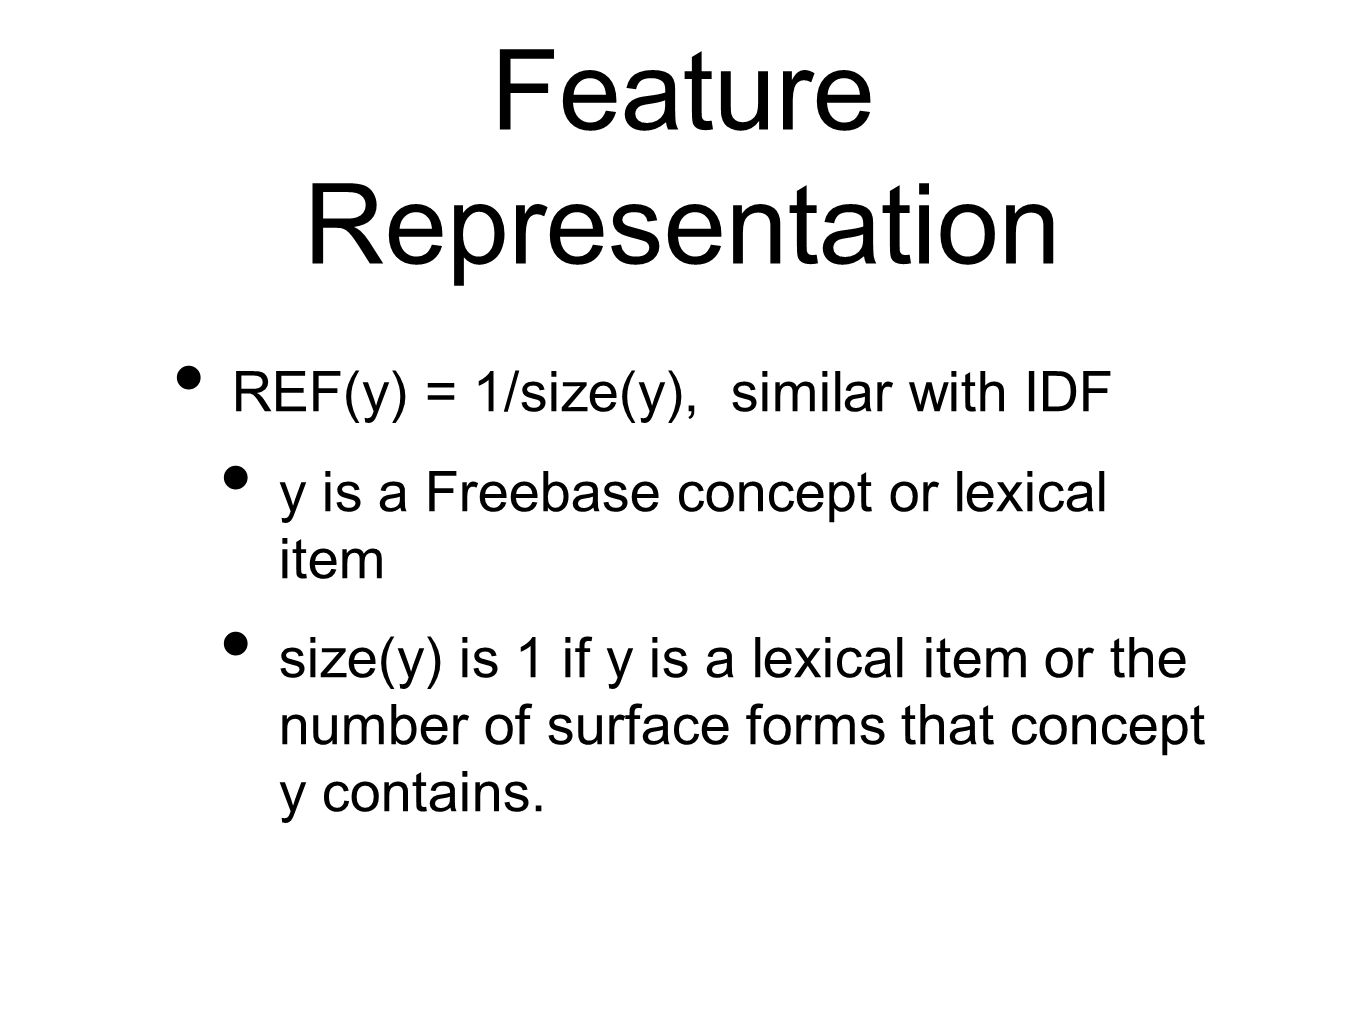 Feature Representation REF(y) = 1/size(y), similar with IDF y is a Freebase concept or lexical item size(y) is 1 if y is a lexical item or the number of surface forms that concept y contains.